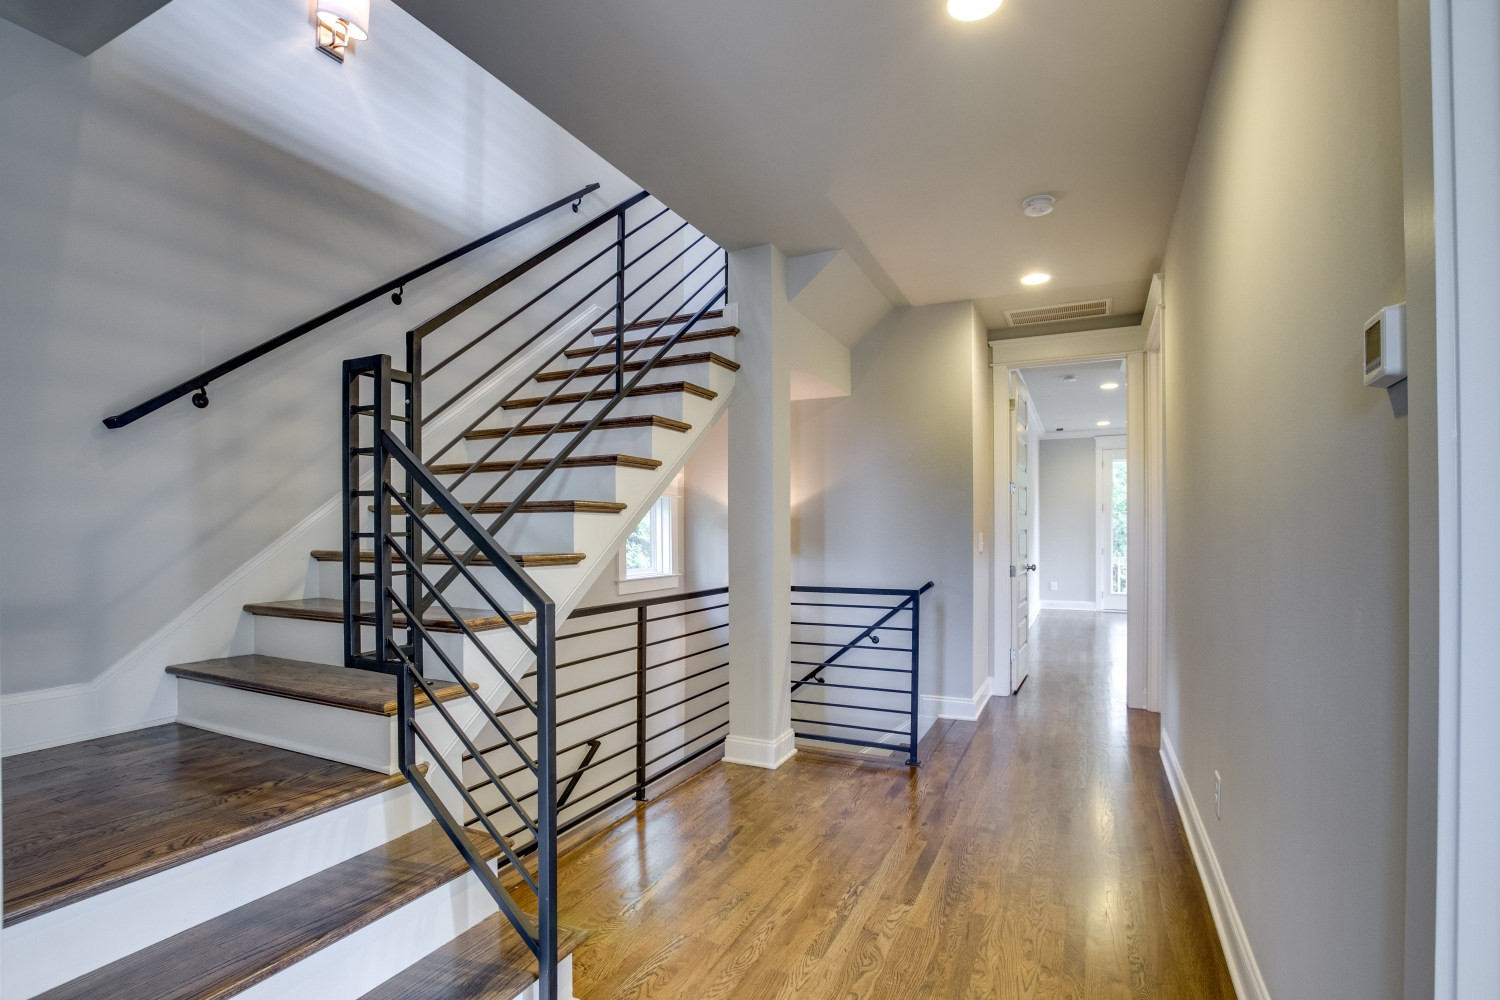 House-Plans-Online-Narrow-Nashville-Peggy-Newman-Stairs-Iron-Kimbark.jpg